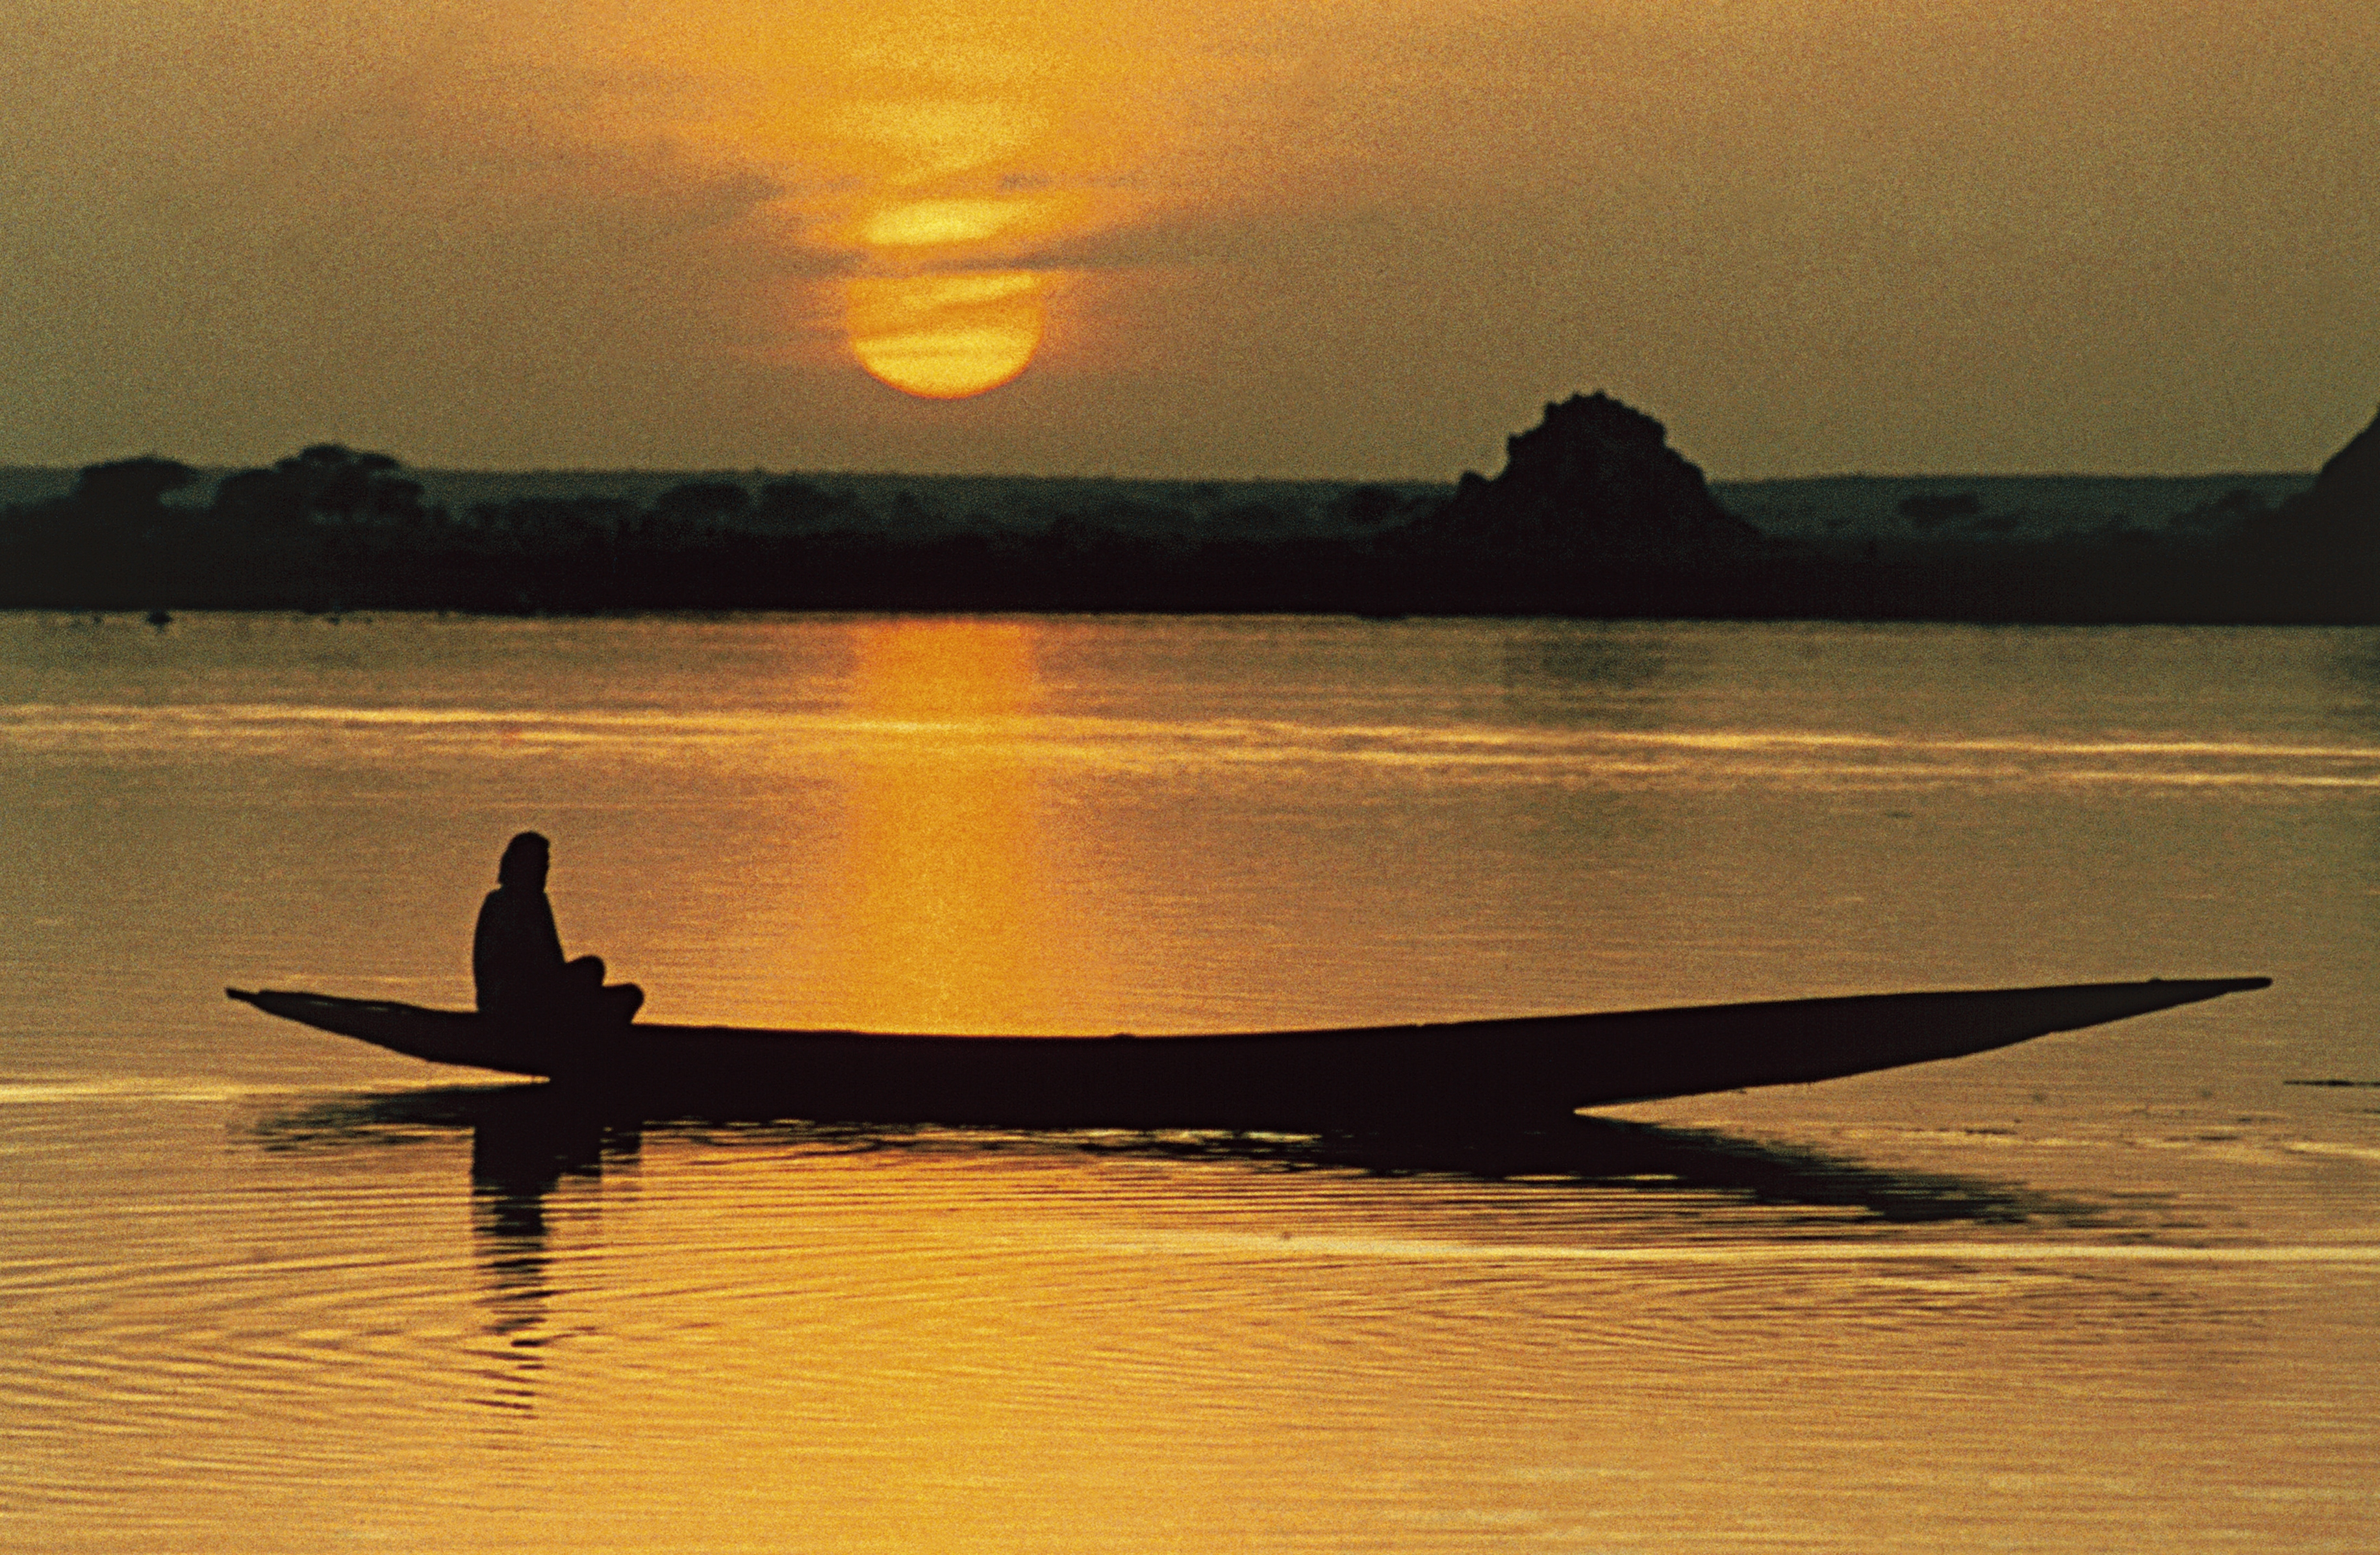 Pirogue on Niger river at sunset